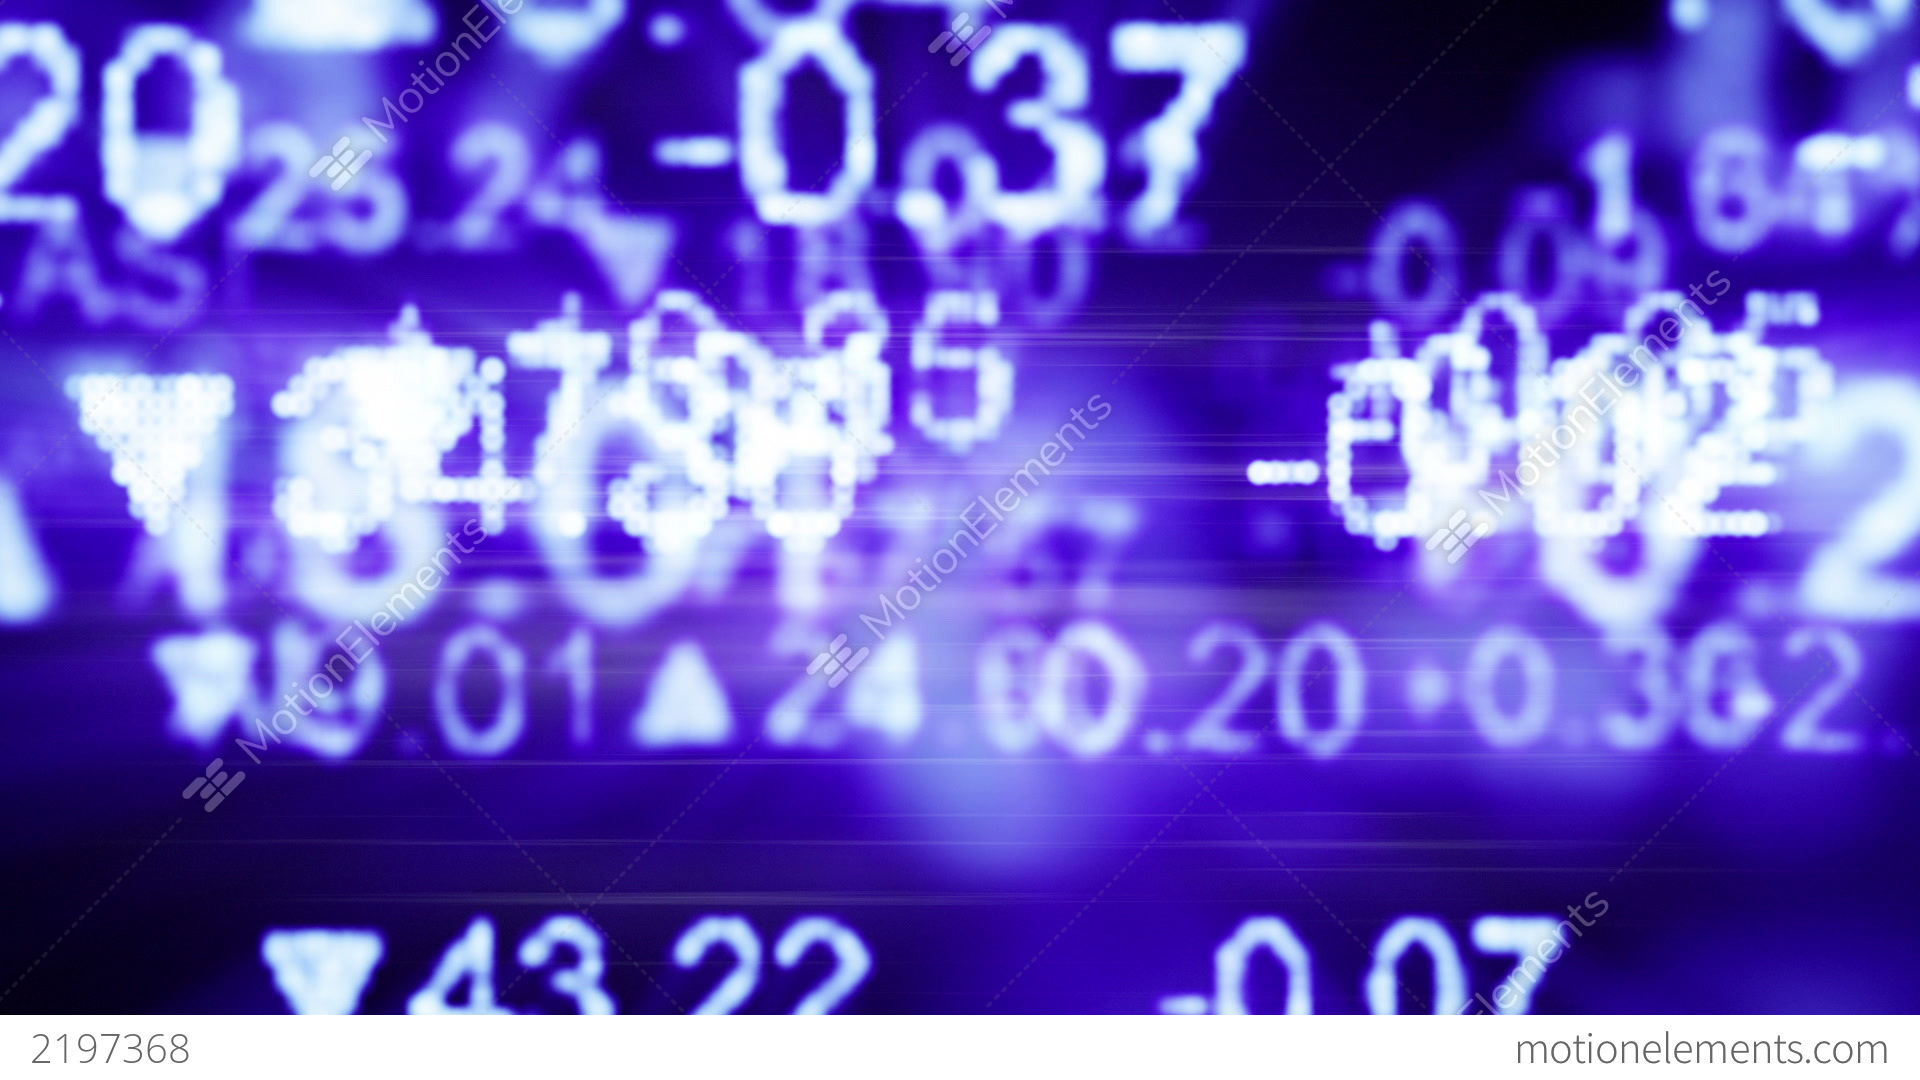 Stock Market Quotes Blue Seamless Loop Background Cg